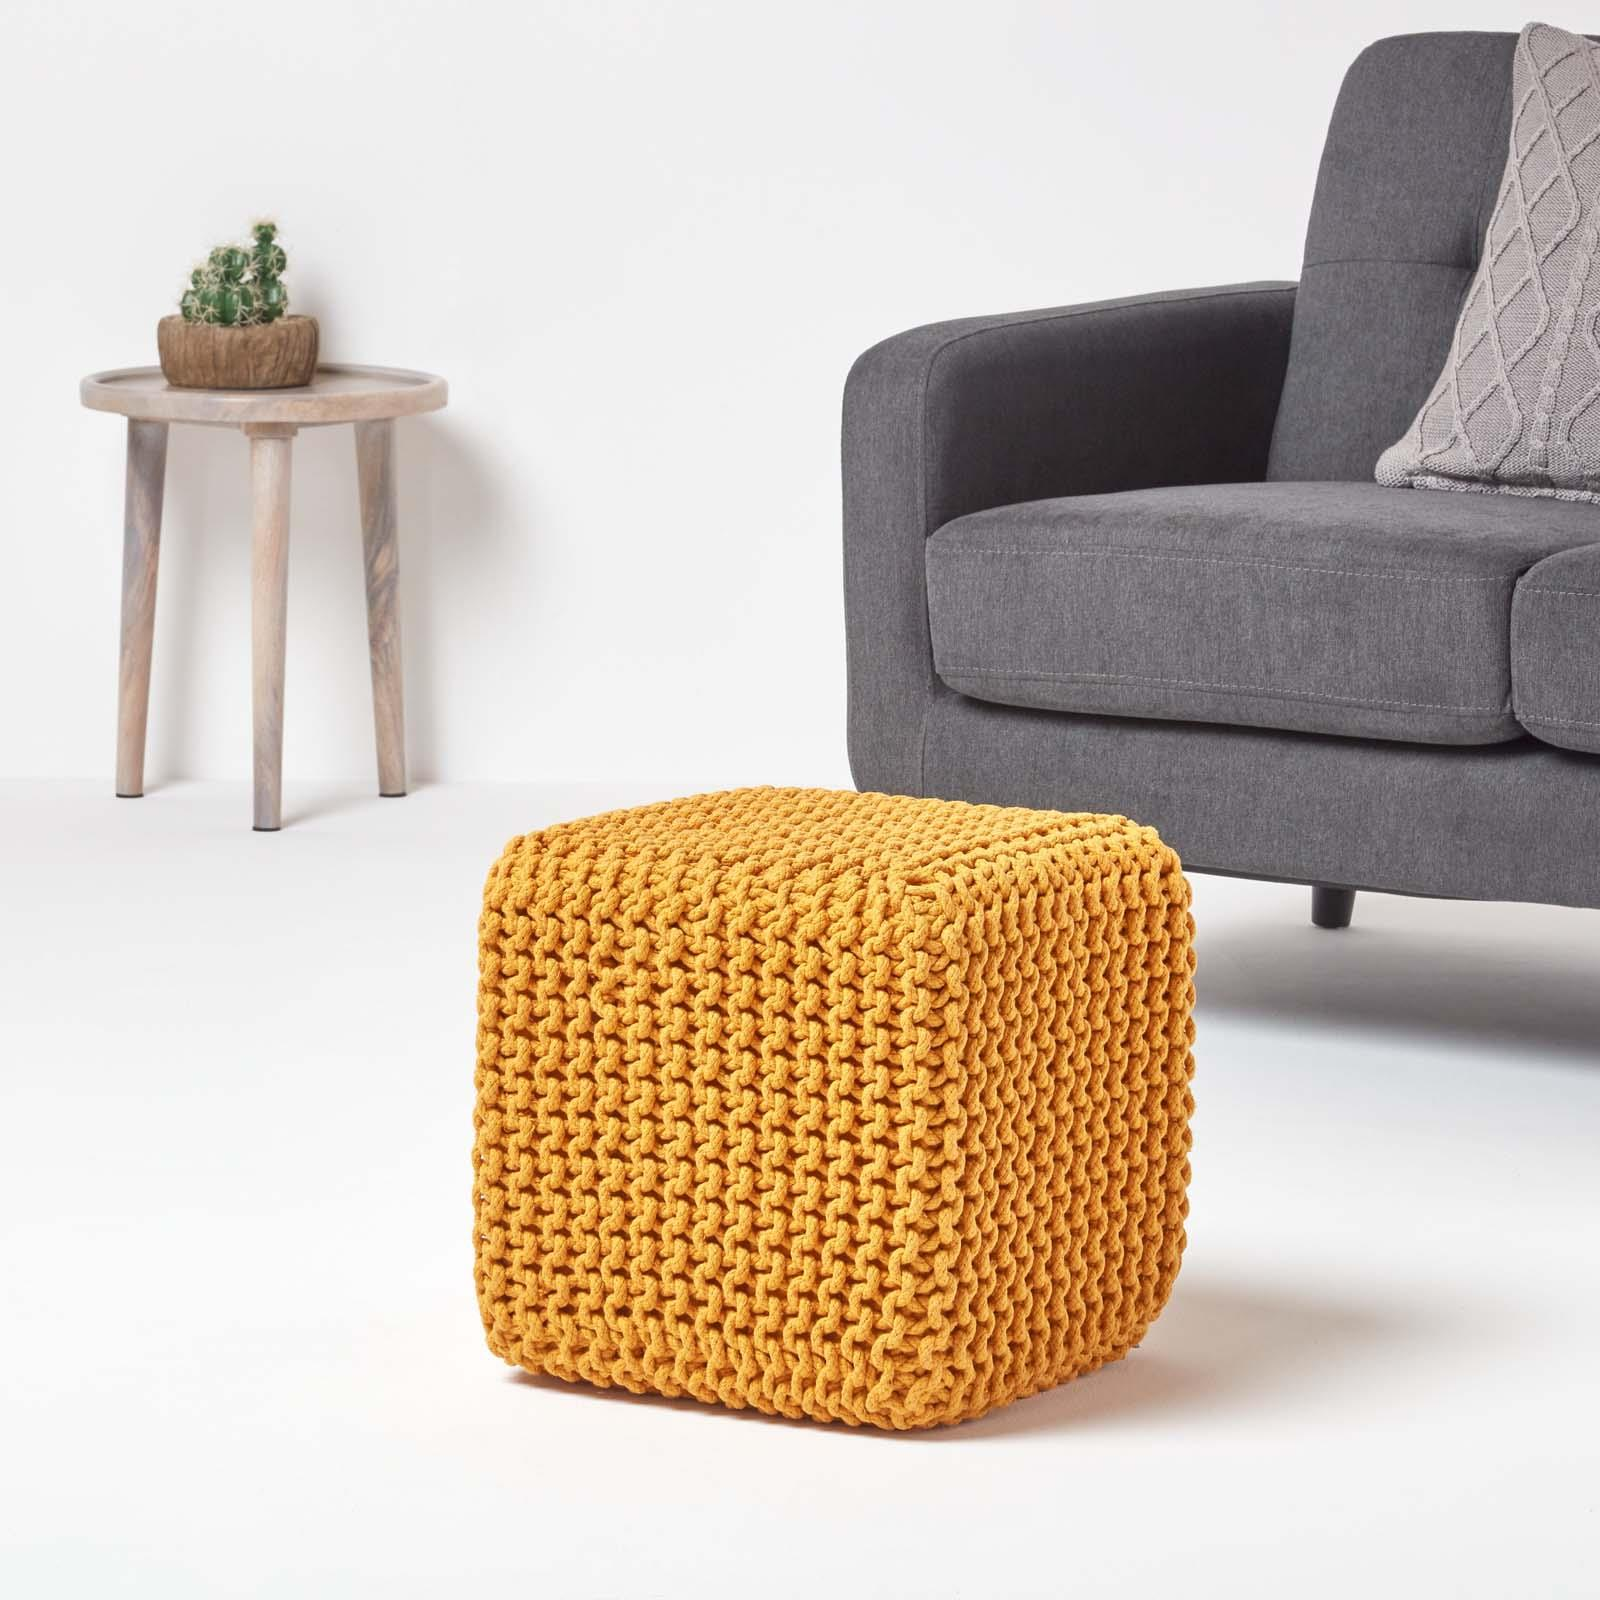 Hand-Knitted-100-Cotton-Pouffes-Round-Sphere-Or-Cube-Square-Chunky-Footstools thumbnail 87